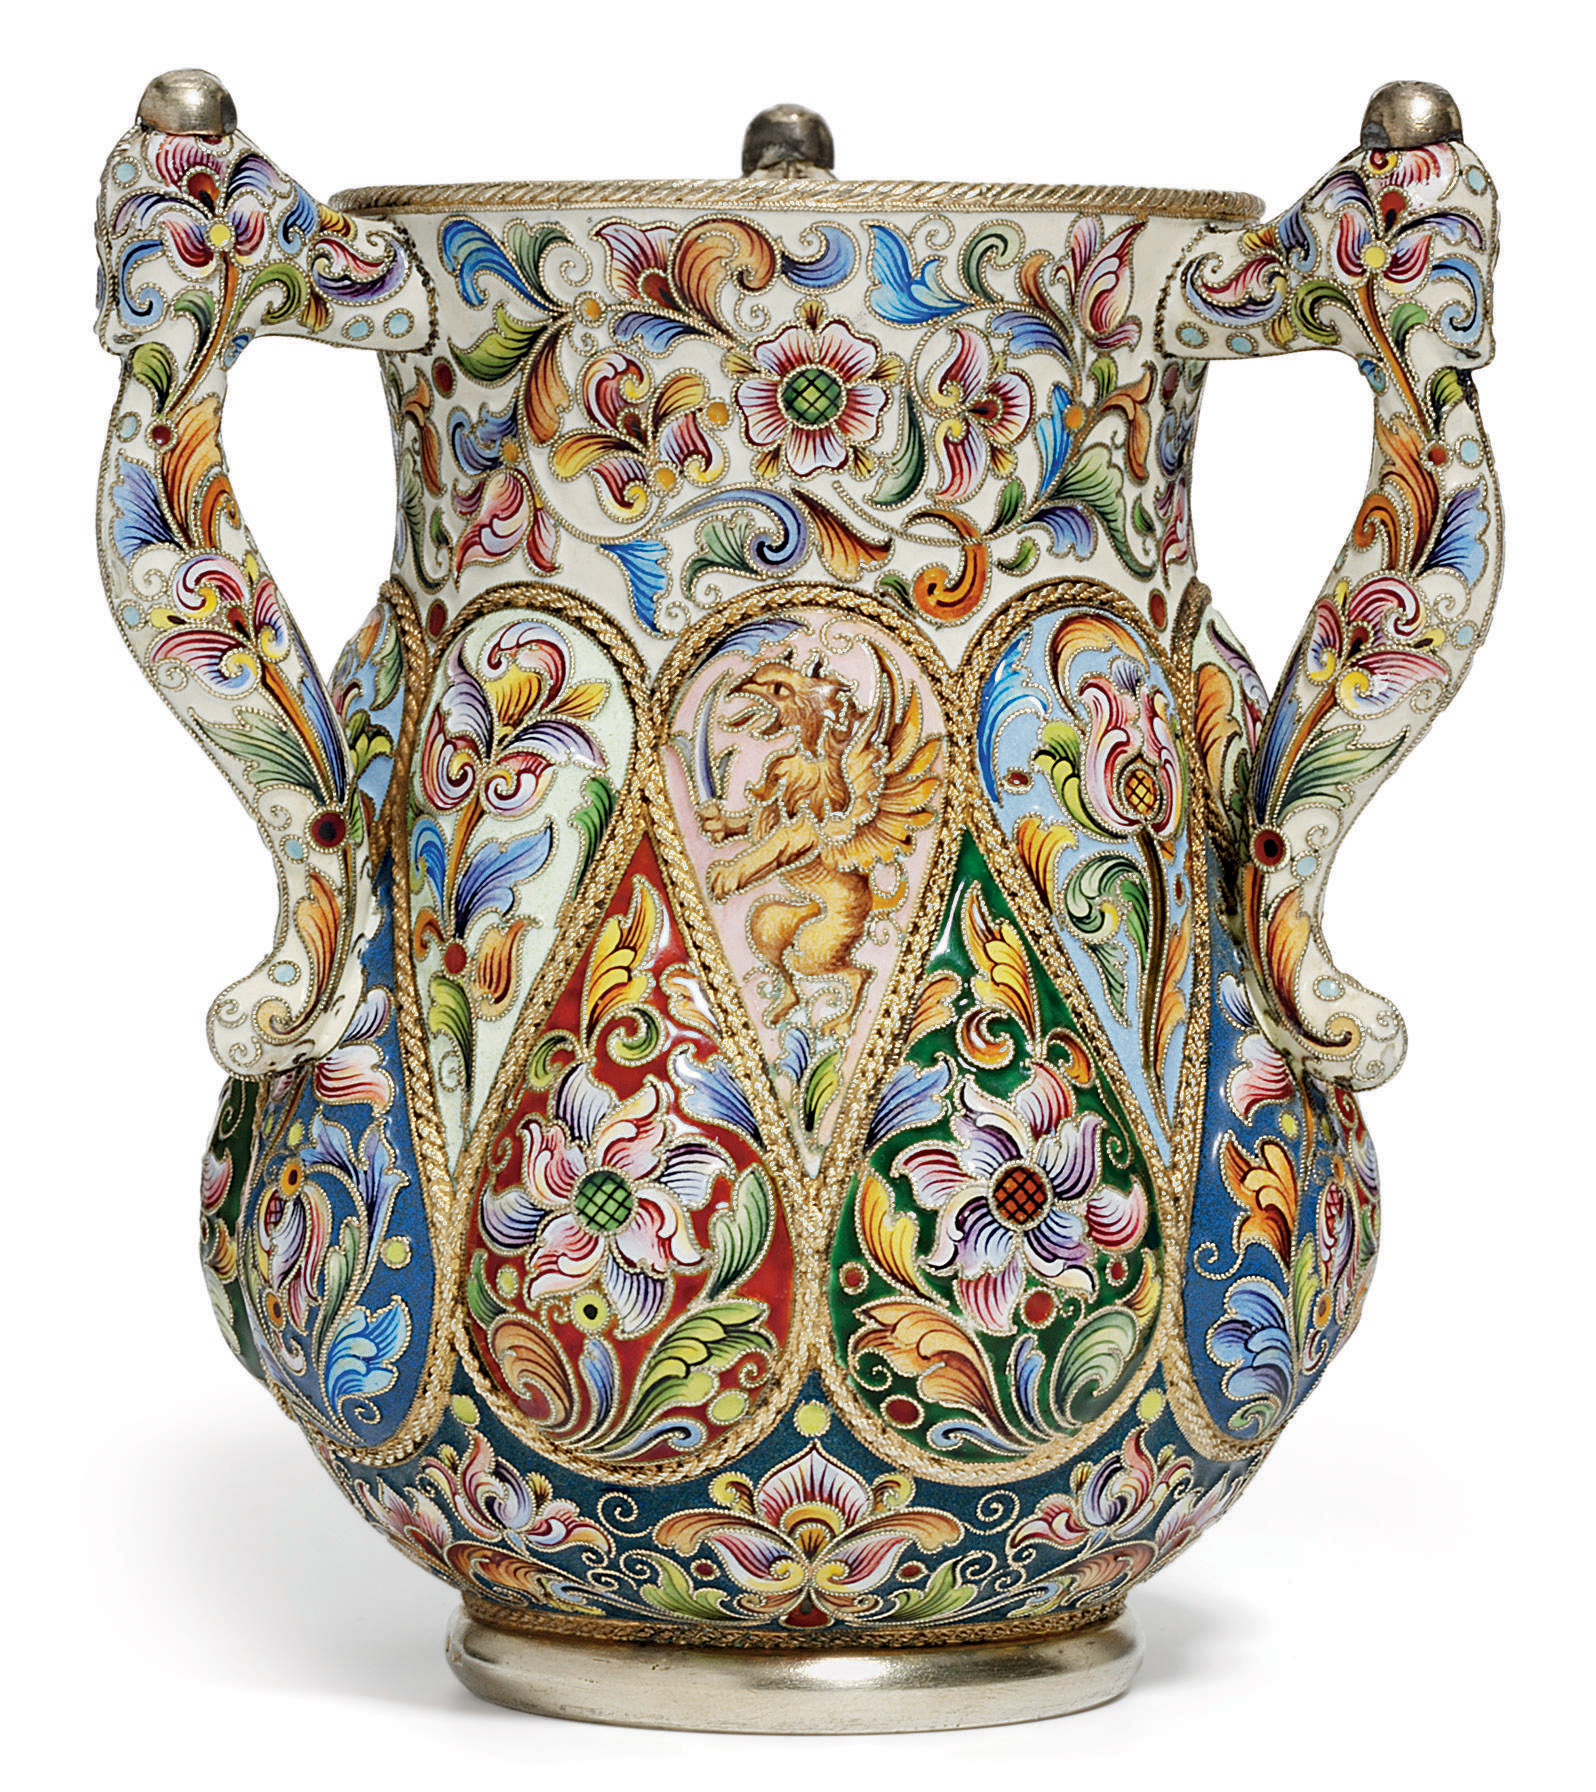 A Silver-Gilt and Cloisonné Enamel Three-Handled Cup